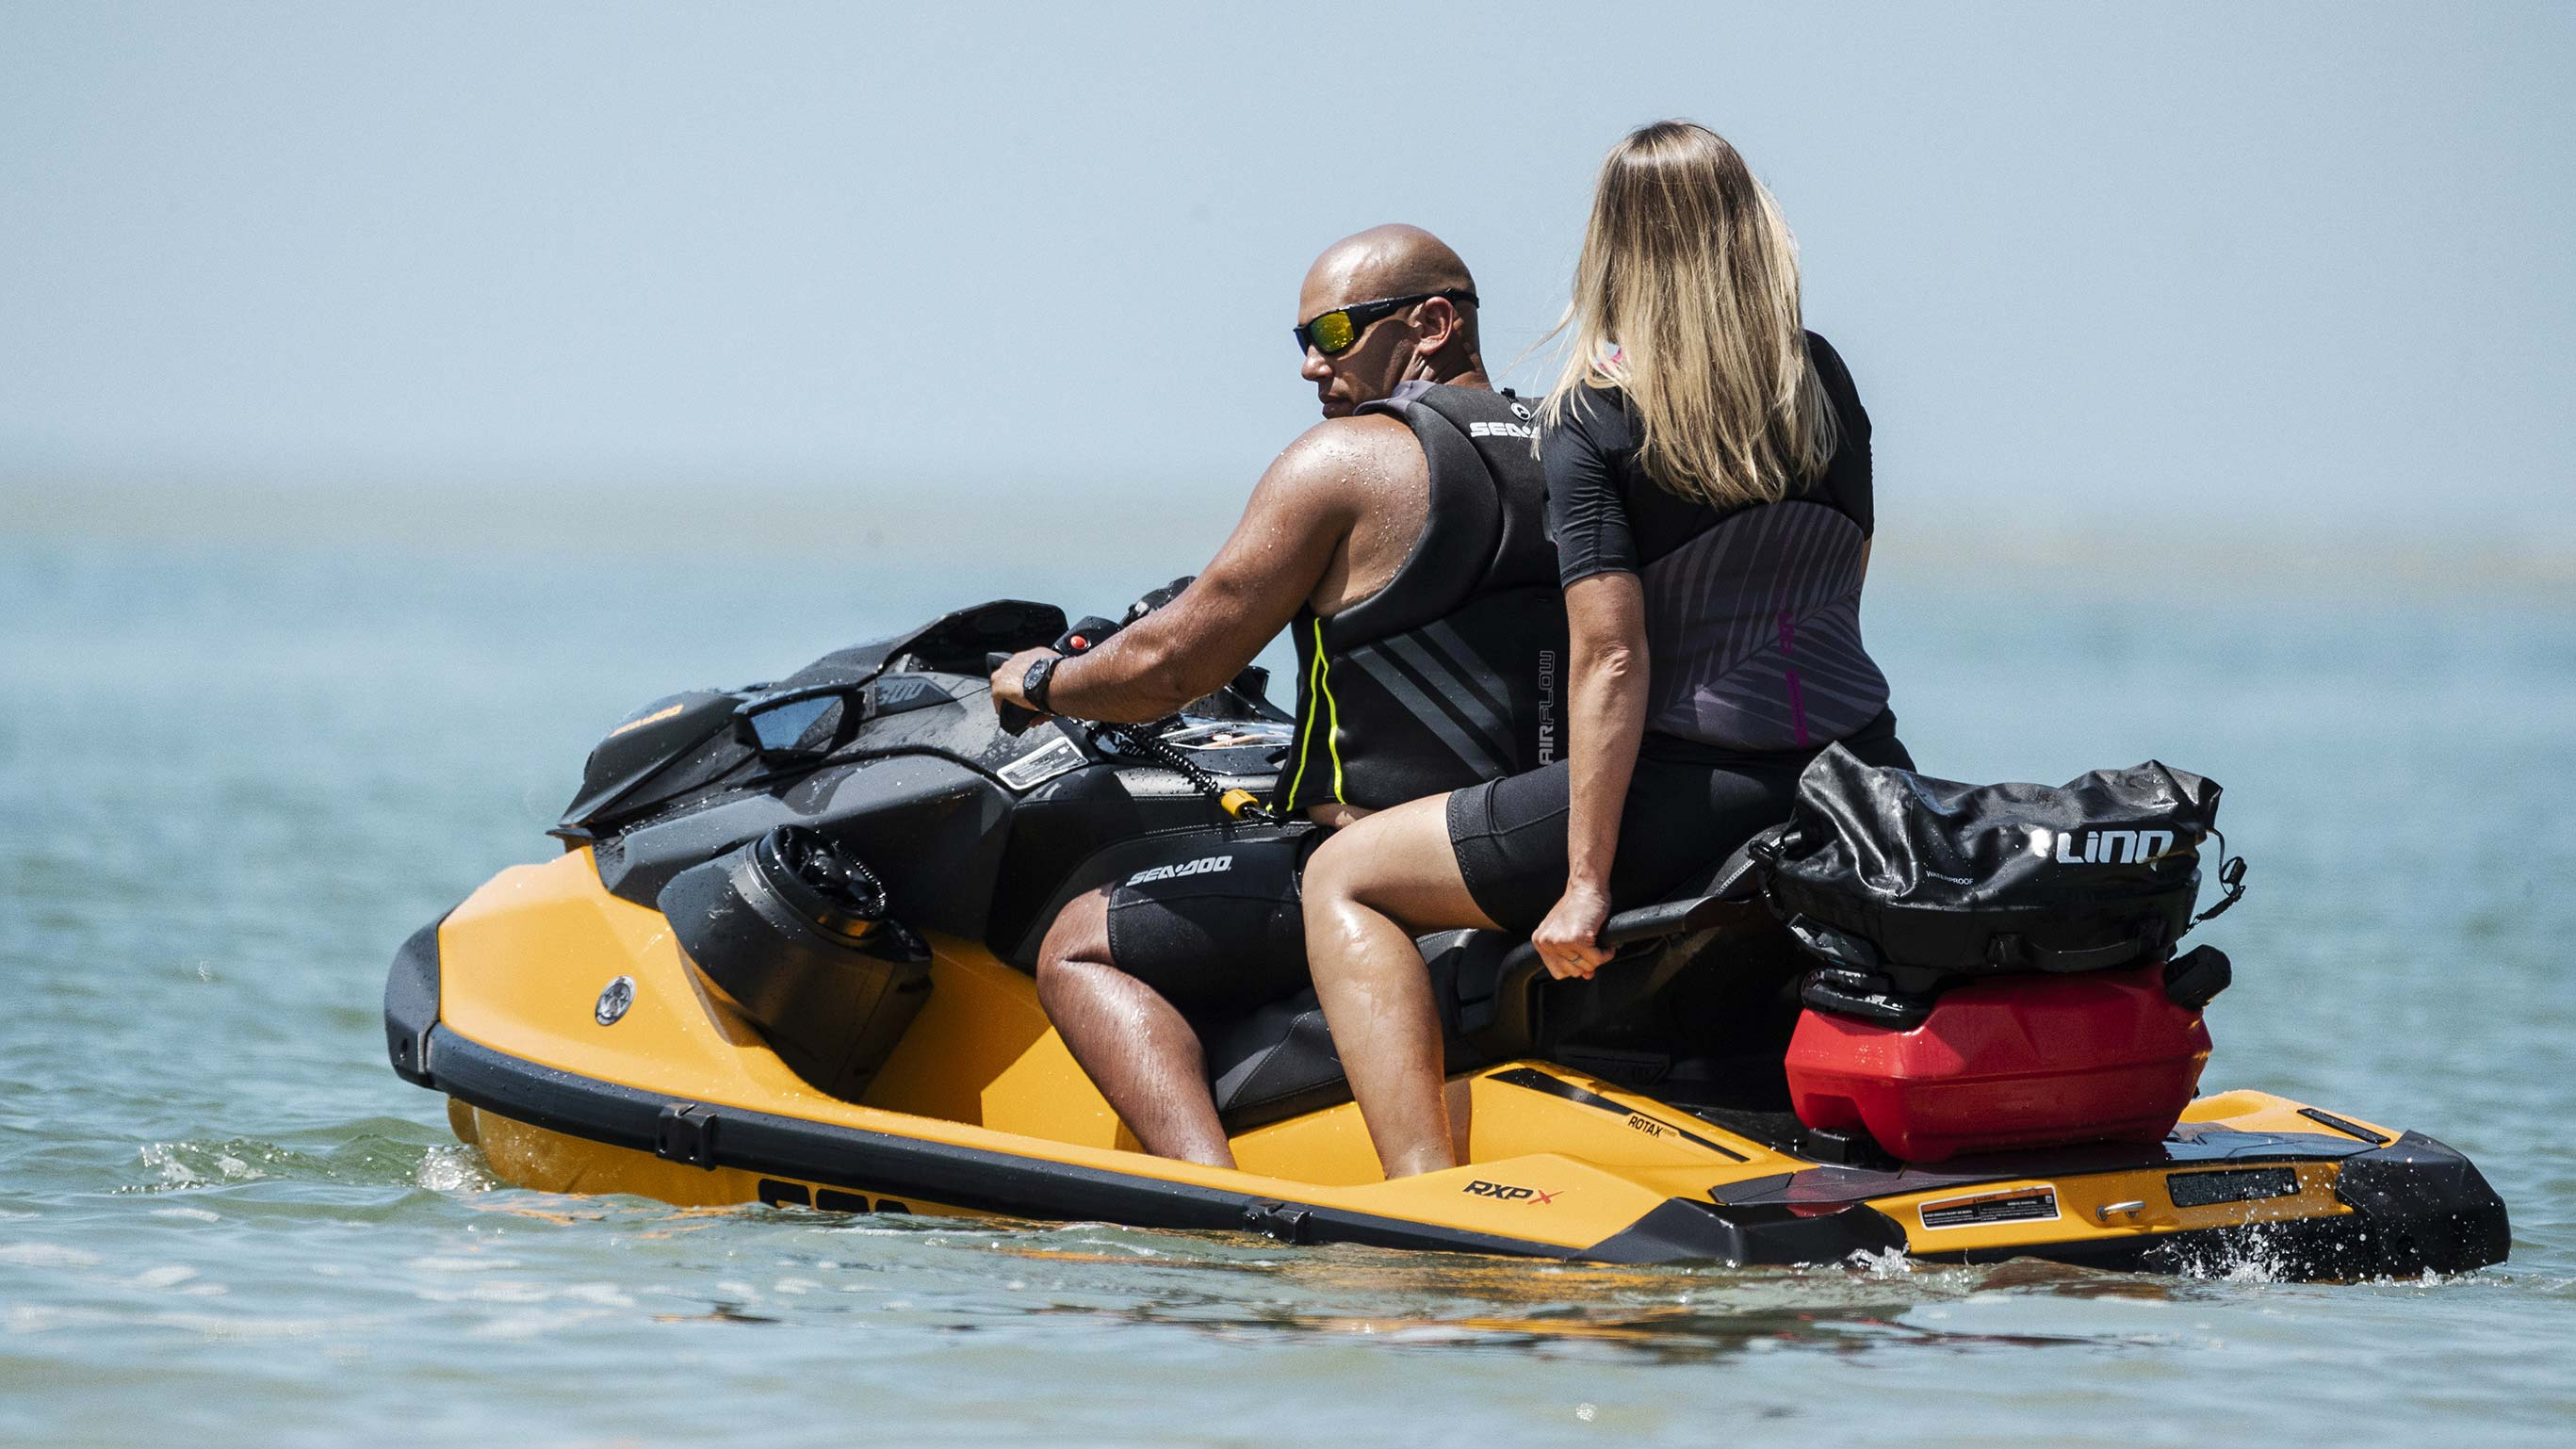 Couple riding a Sea-Doo RXP-X with a LinQ system